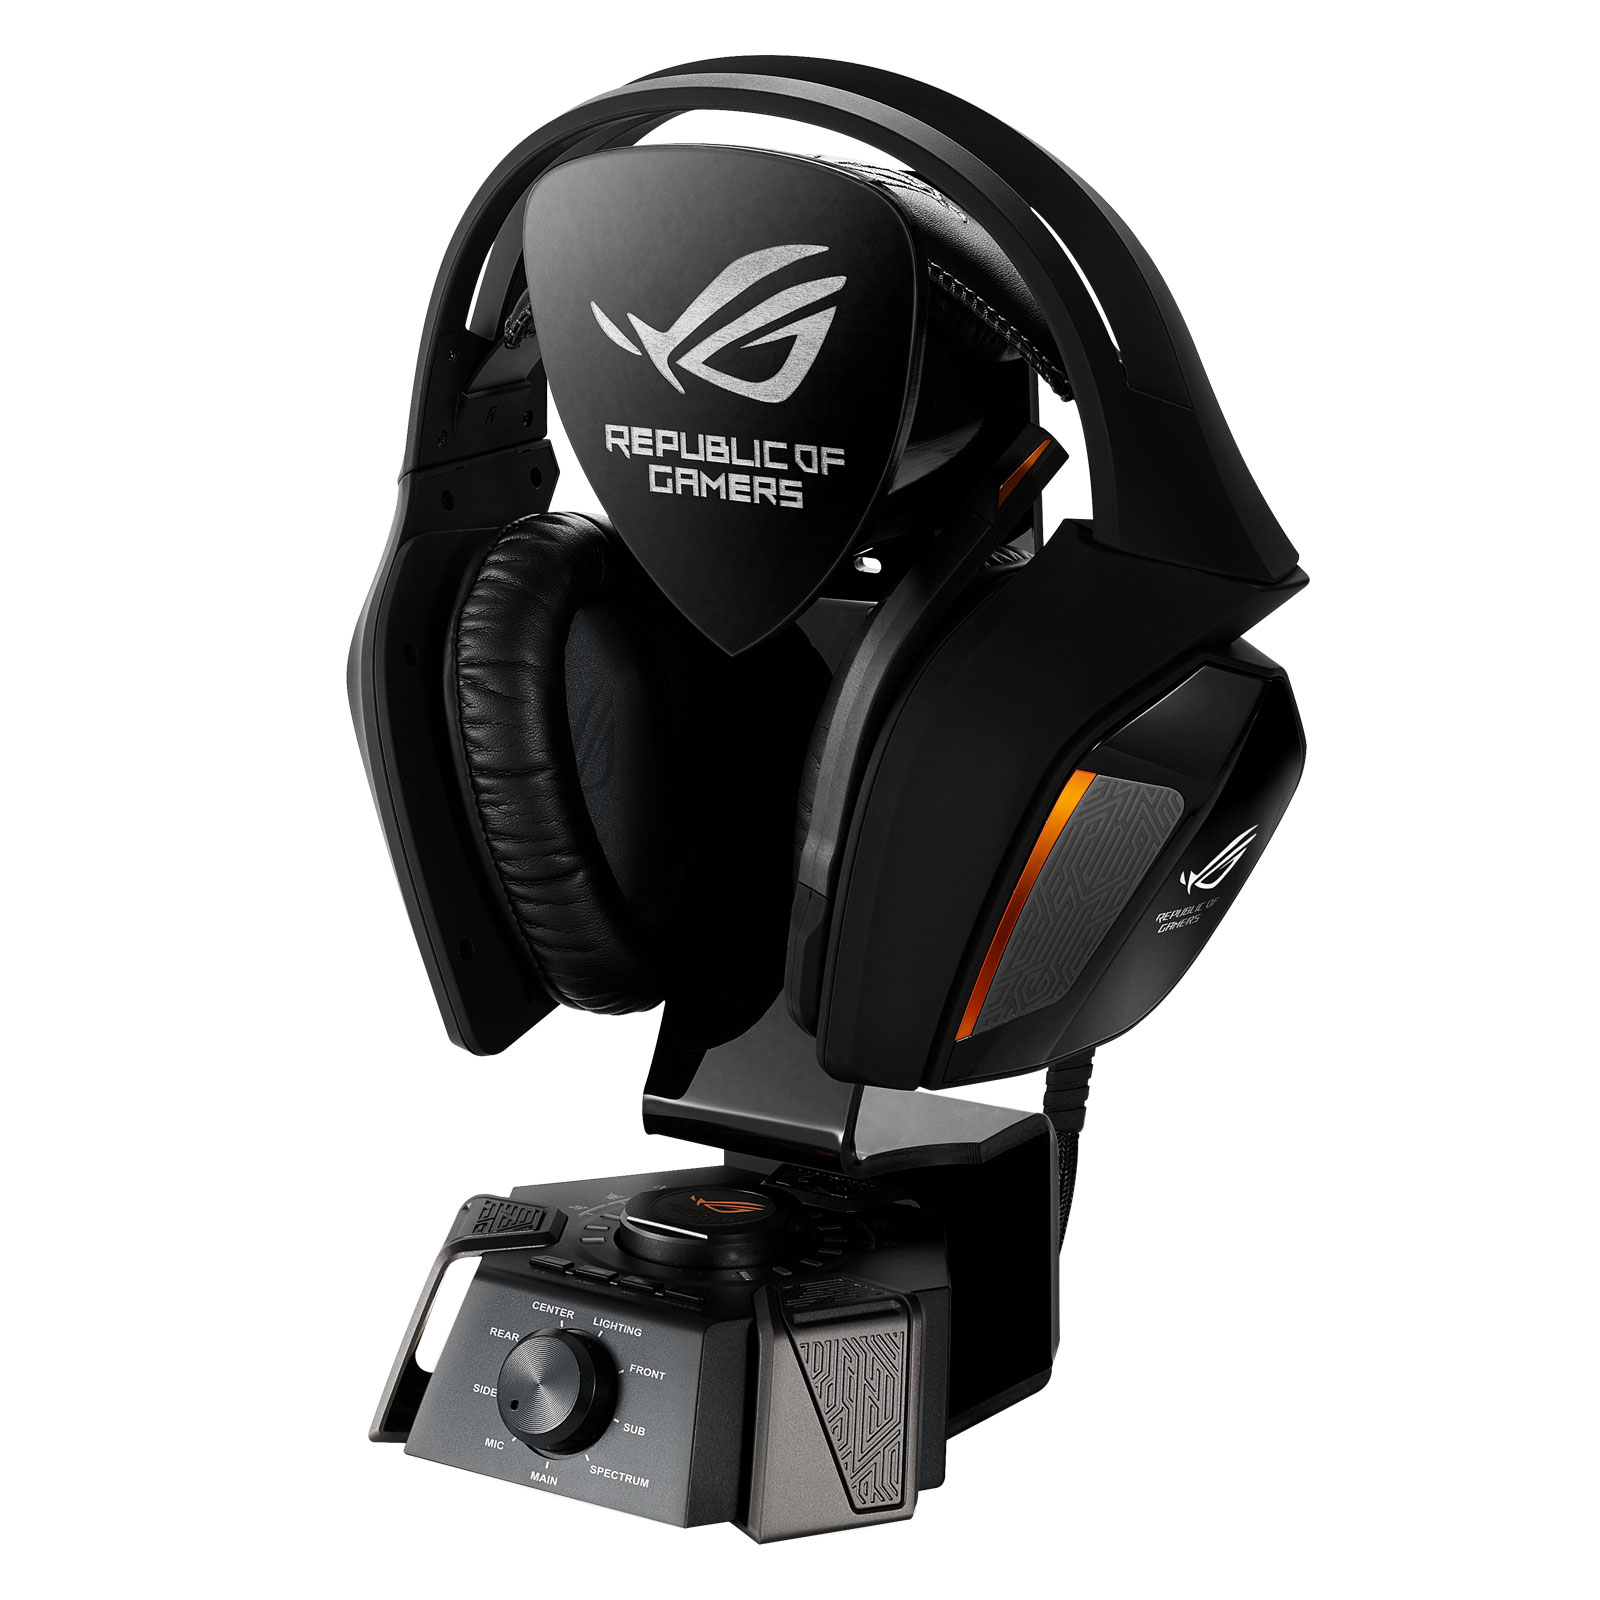 Micro-casque ASUS ROG Republic of Gamers Centurion 7.1 Casque-micro 7.1 filaire à réduction active de bruit pour gamer avec station audio USB (compatible PC / Mac)